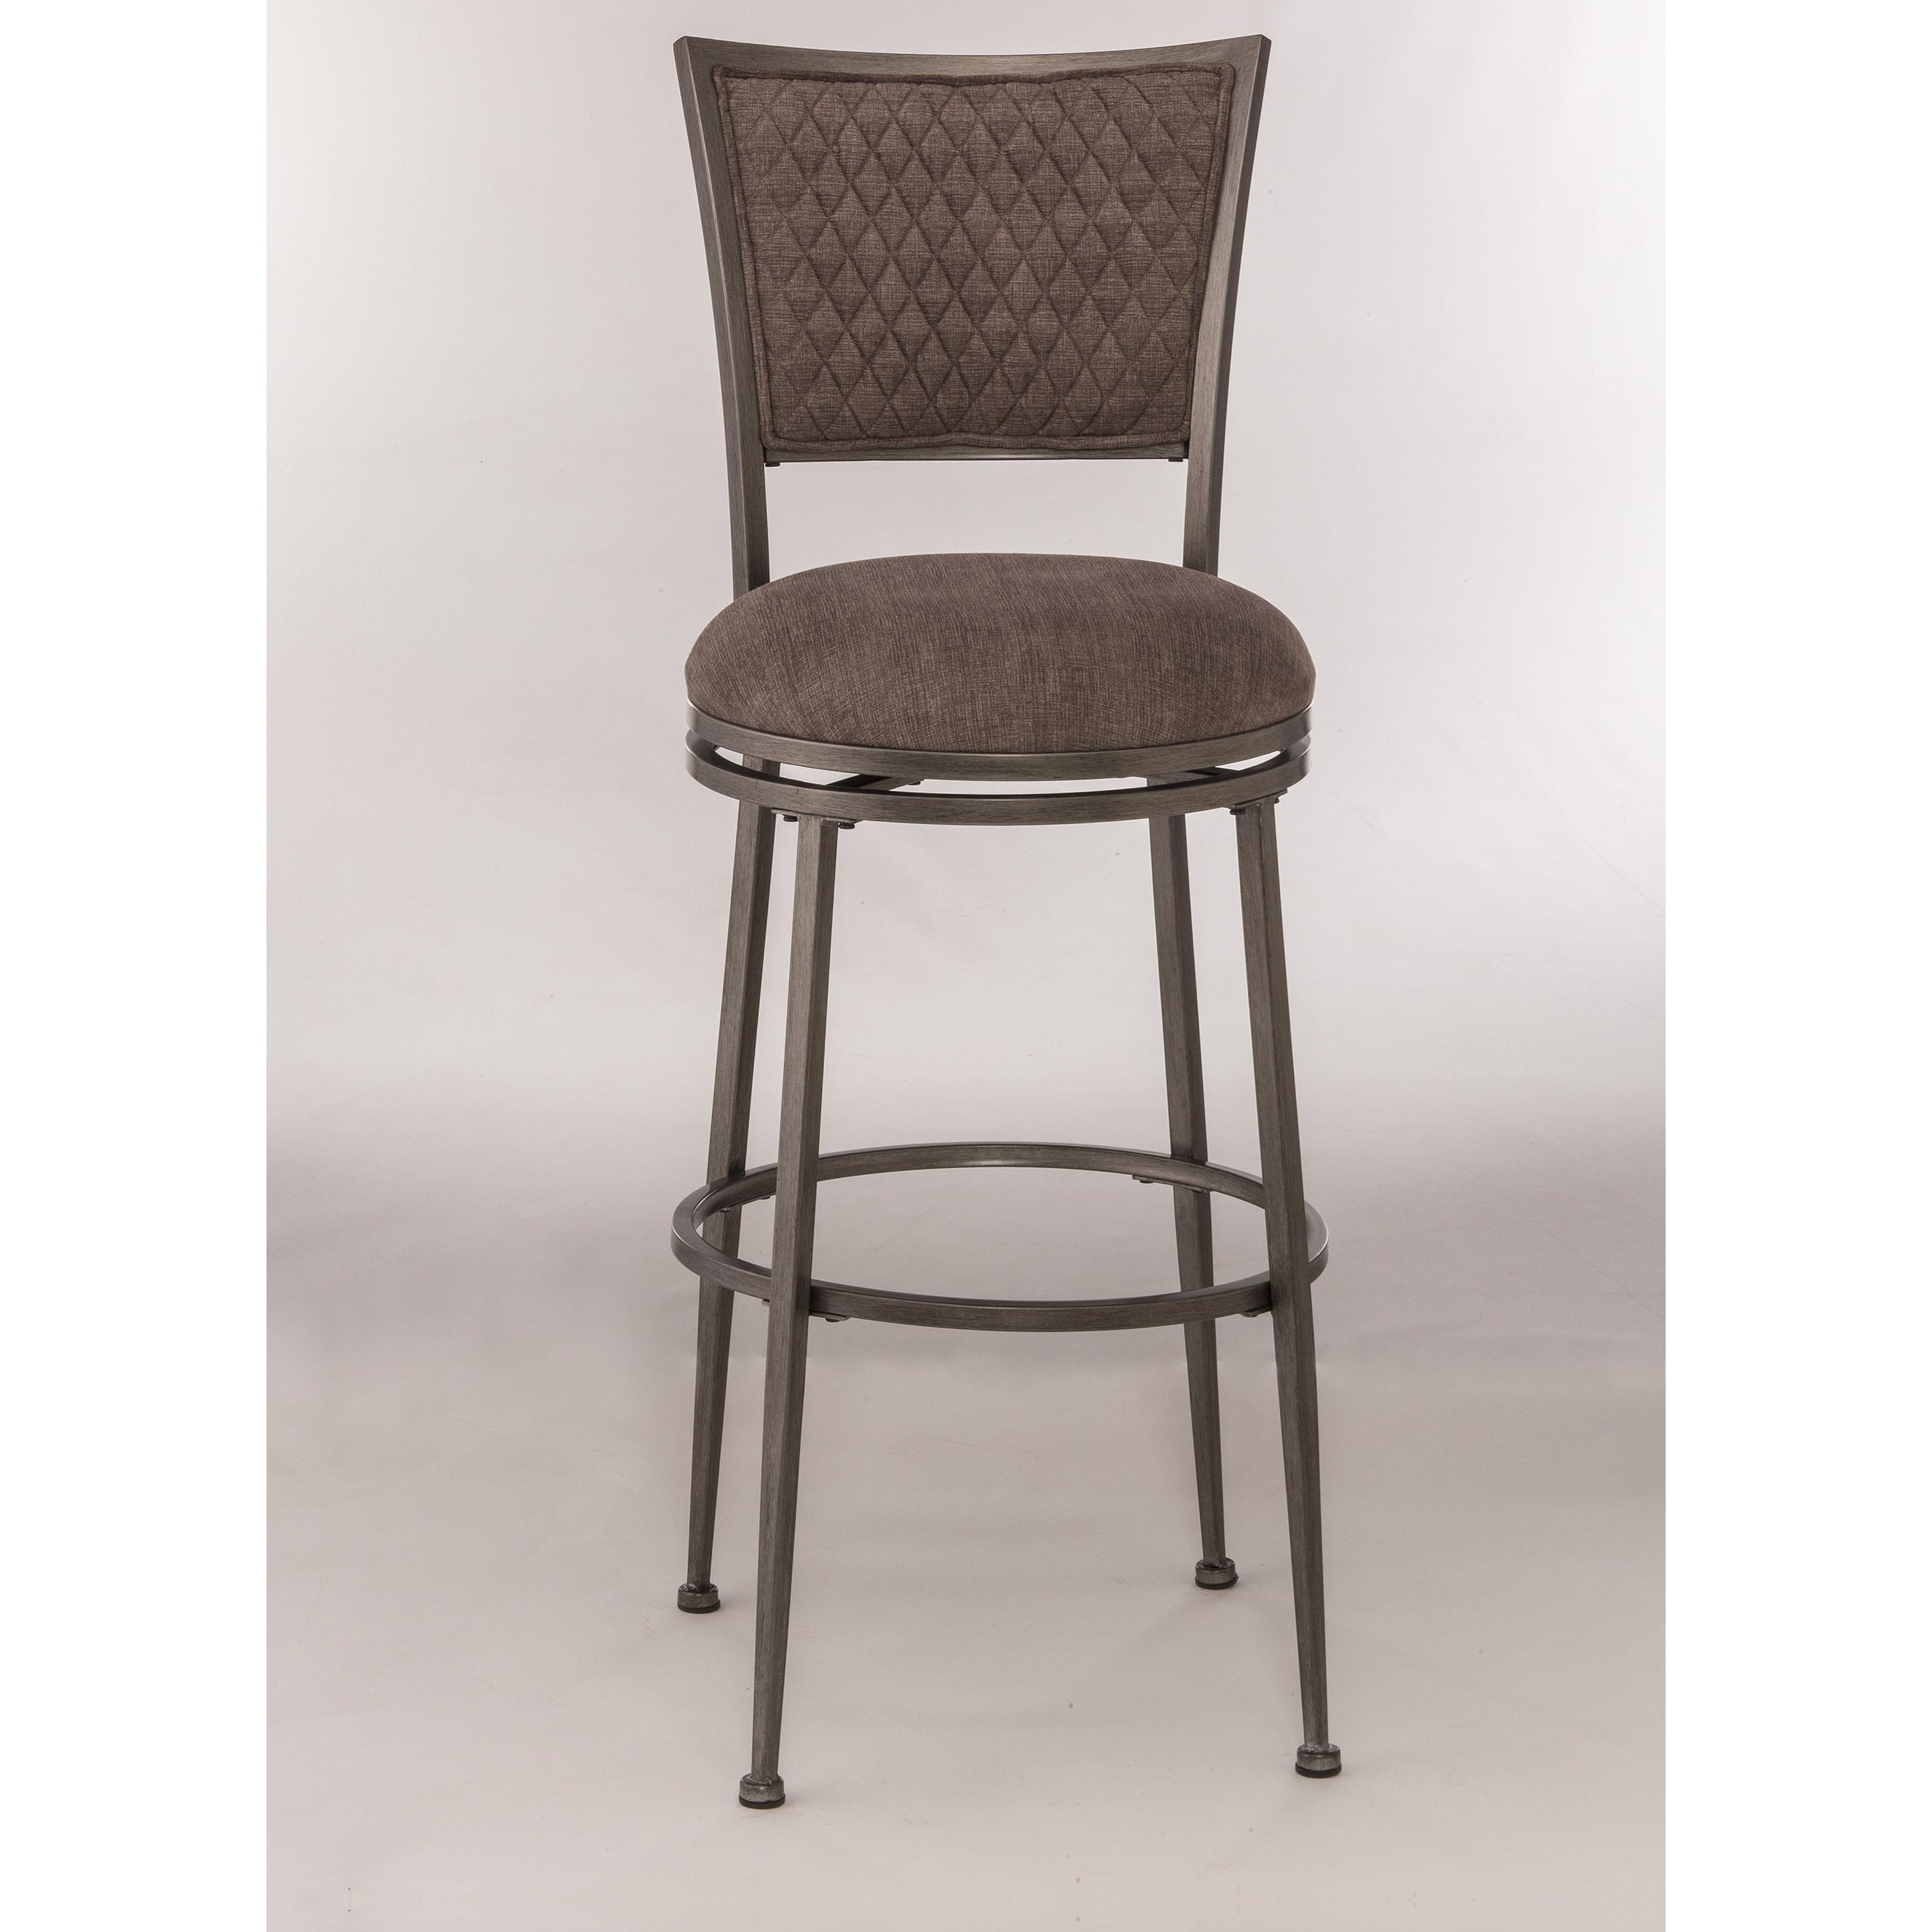 Hillsdale Metal Stools Swivel Counter Stool - Item Number: 5937-827